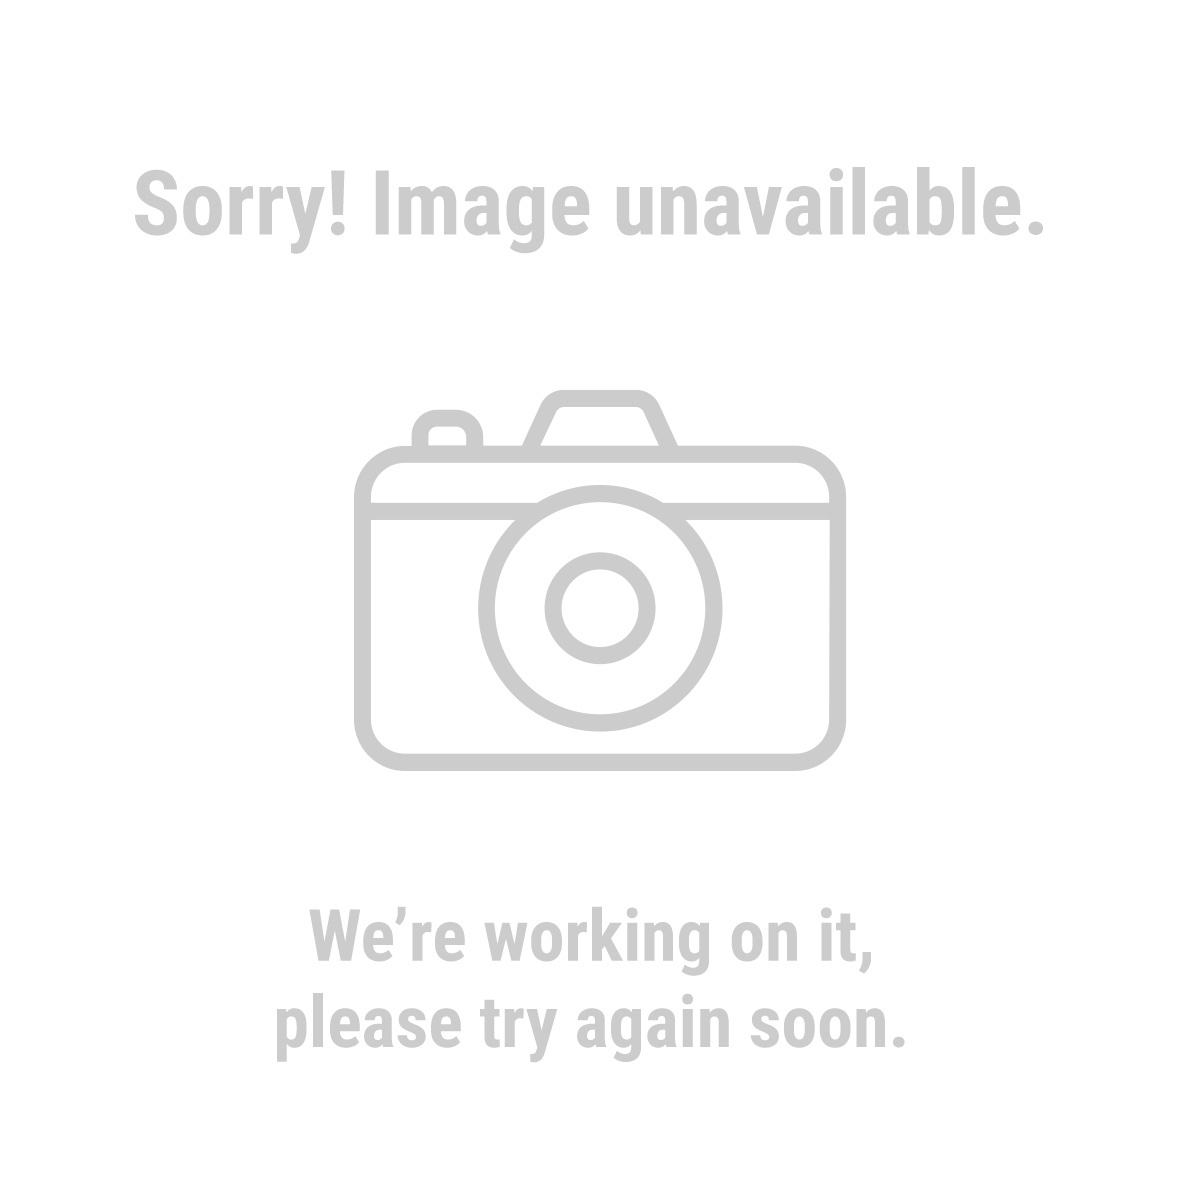 "Pittsburgh 39722 3/8"" Socket Rail"